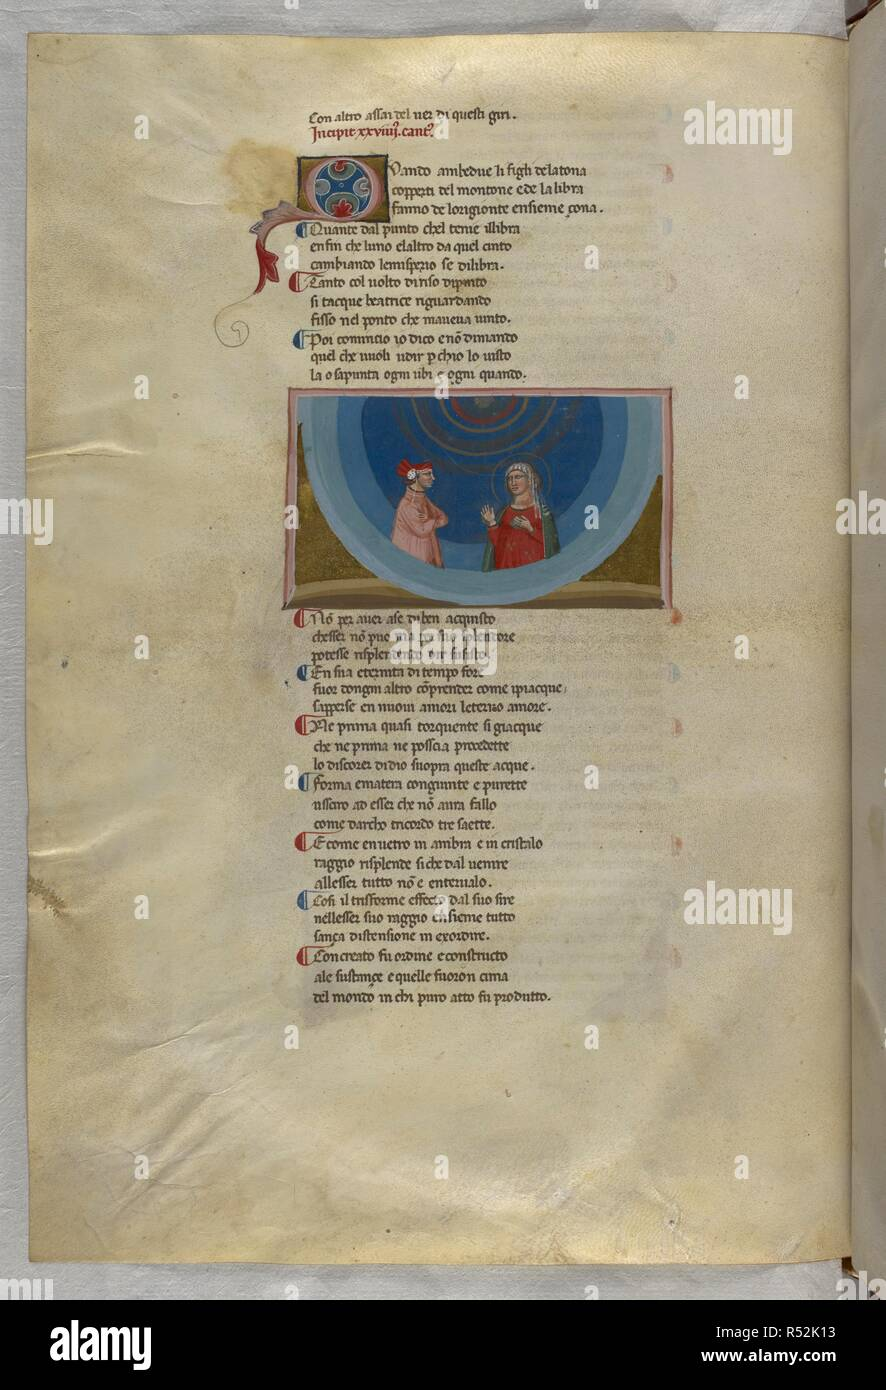 Dante listens to Beatrice's explanation. Dante Alighieri, Divina Commedia ( The Divine Comedy ), with a commentary in Latin. 1st half of the 14th century. Source: Egerton 943, f.177v. Language: Italian, Latin. - Stock Image